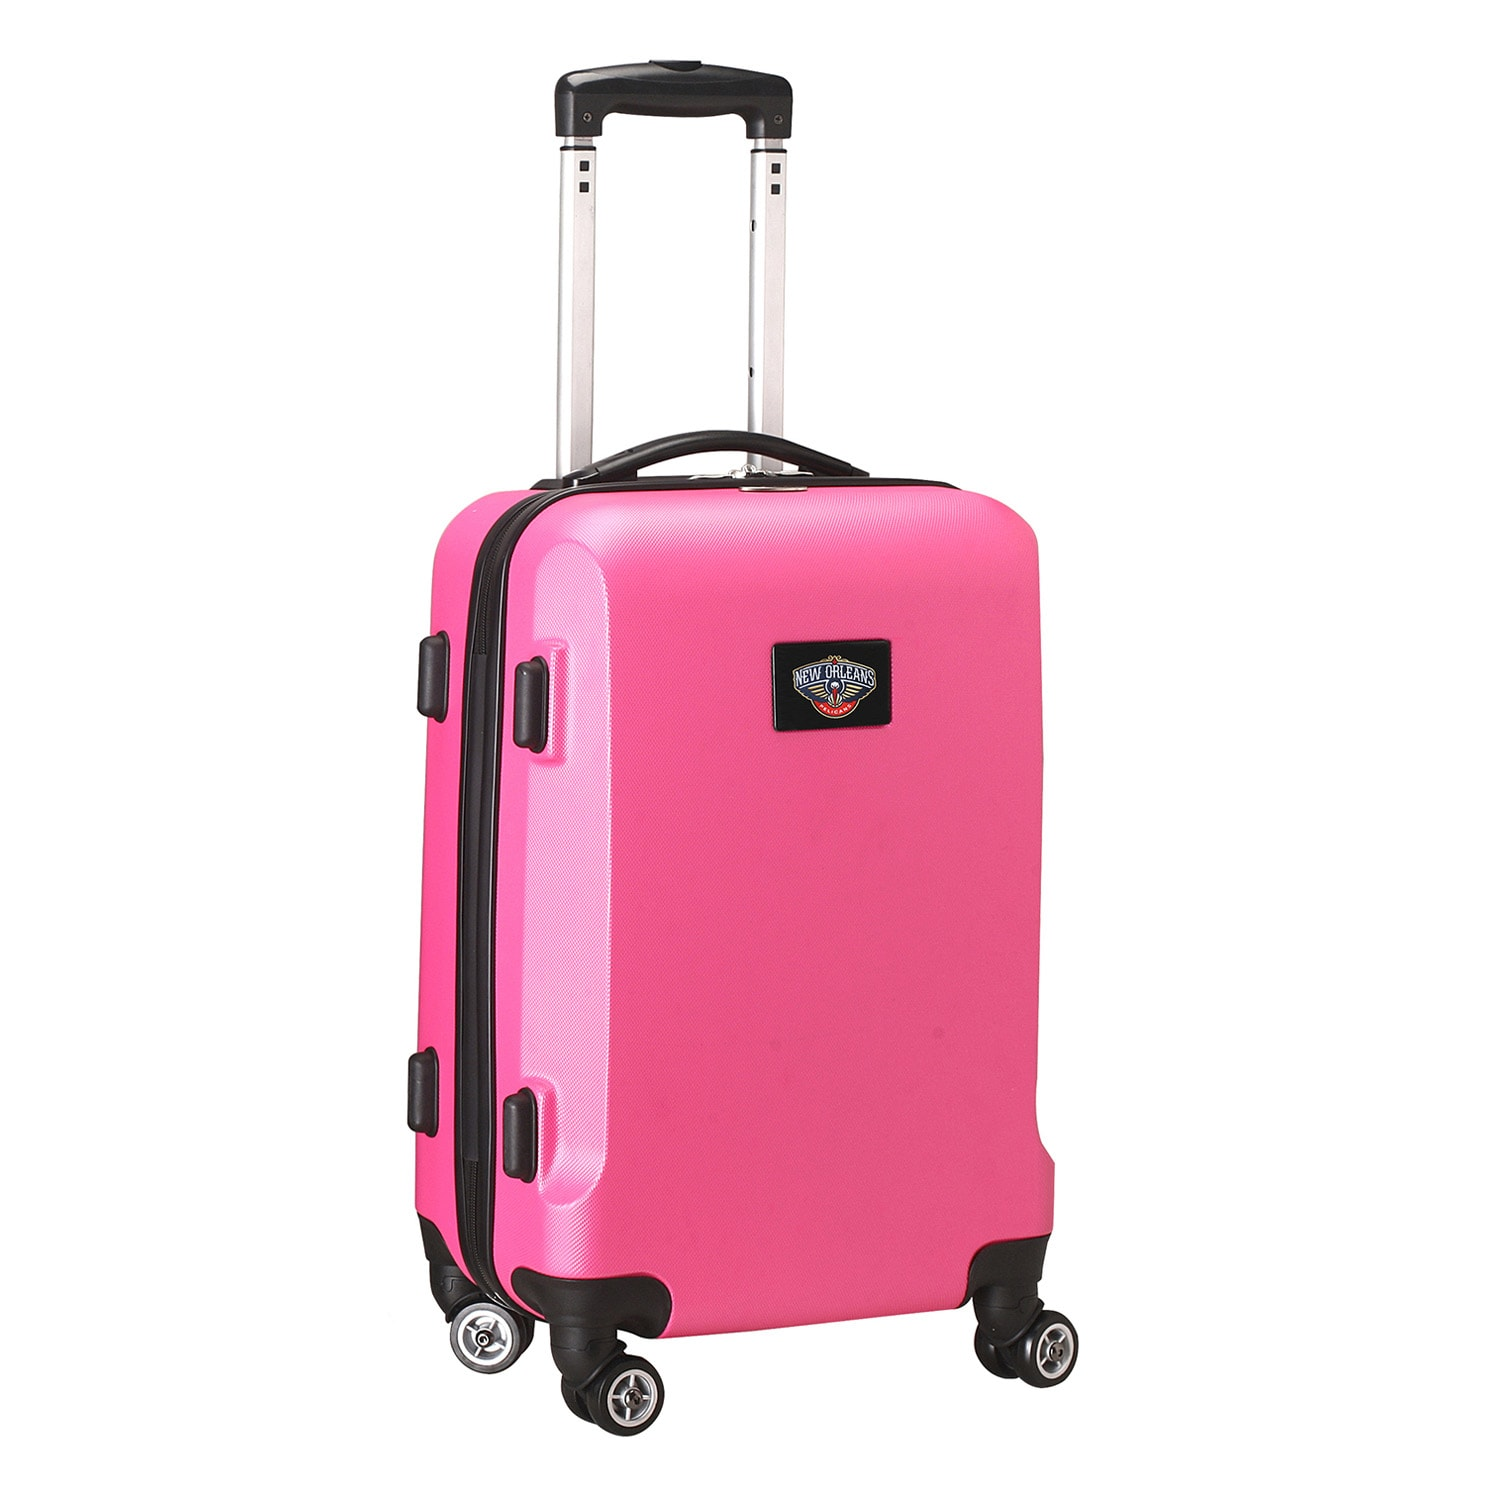 """New Orleans Pelicans 21"""" 8-Wheel Hardcase Spinner Carry-On - Pink"""